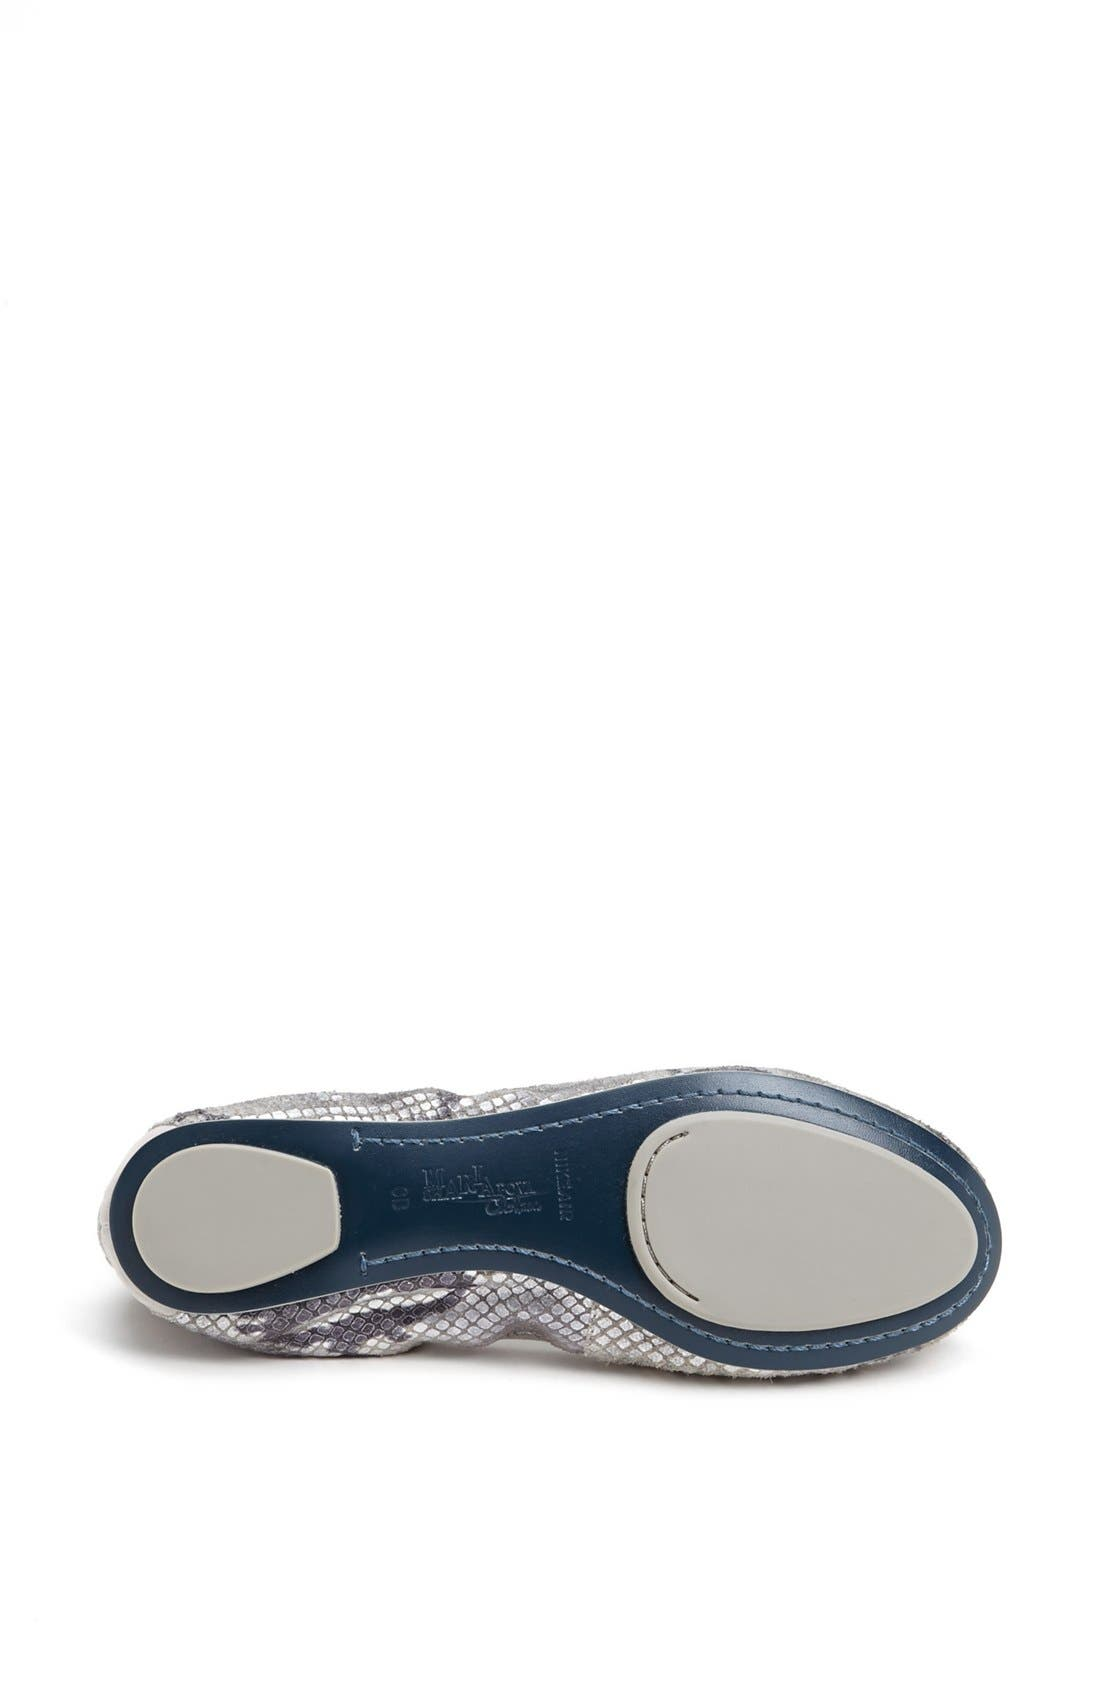 ,                             Maria Sharapova by Cole Haan 'Air Bacara' Flat,                             Alternate thumbnail 27, color,                             045